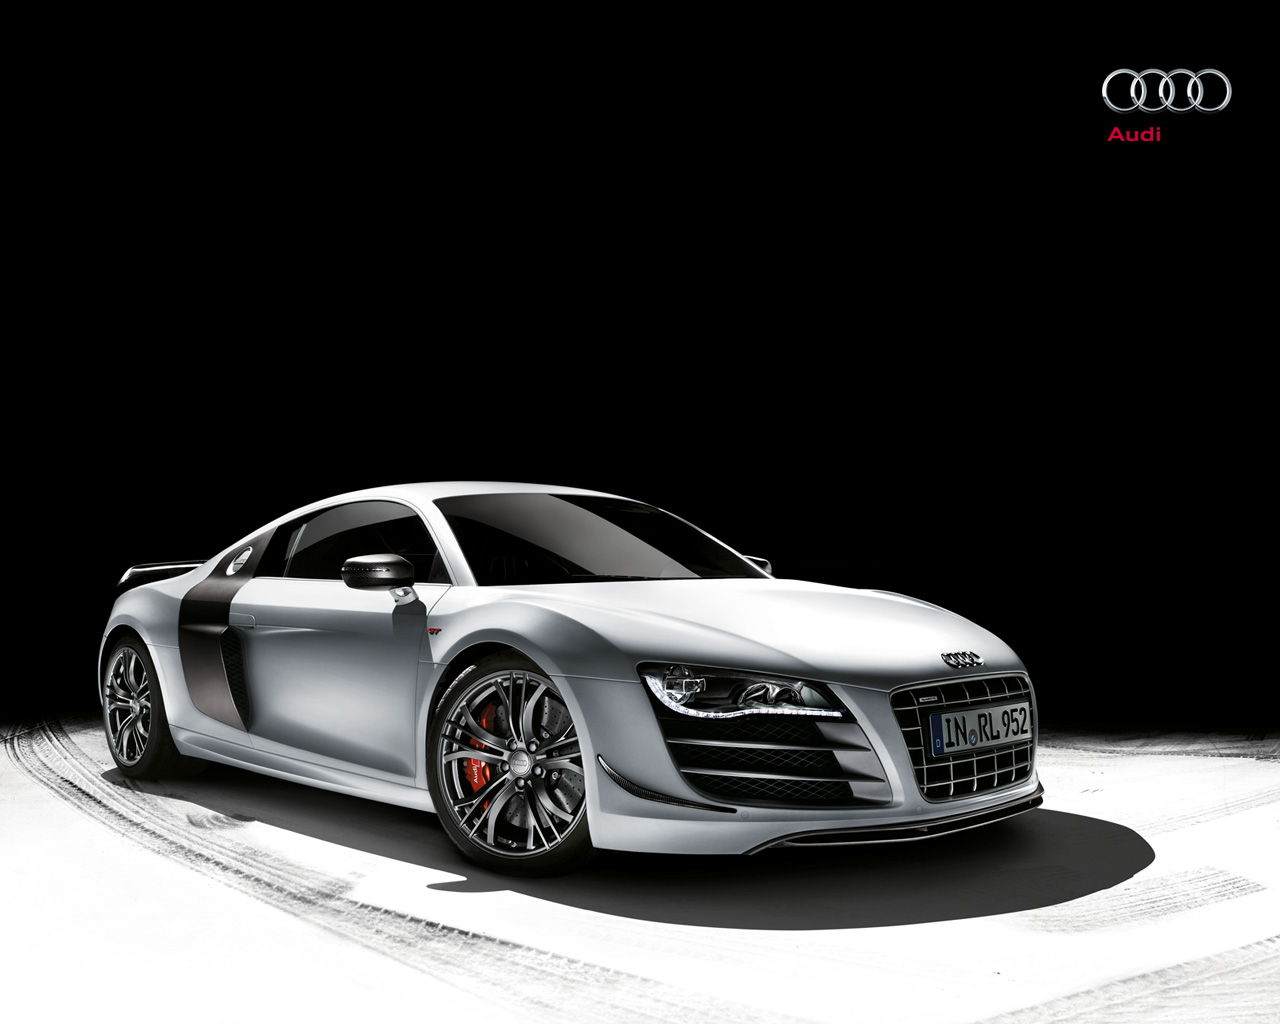 Hd-Car wallpapers: audi r8 wallpaper